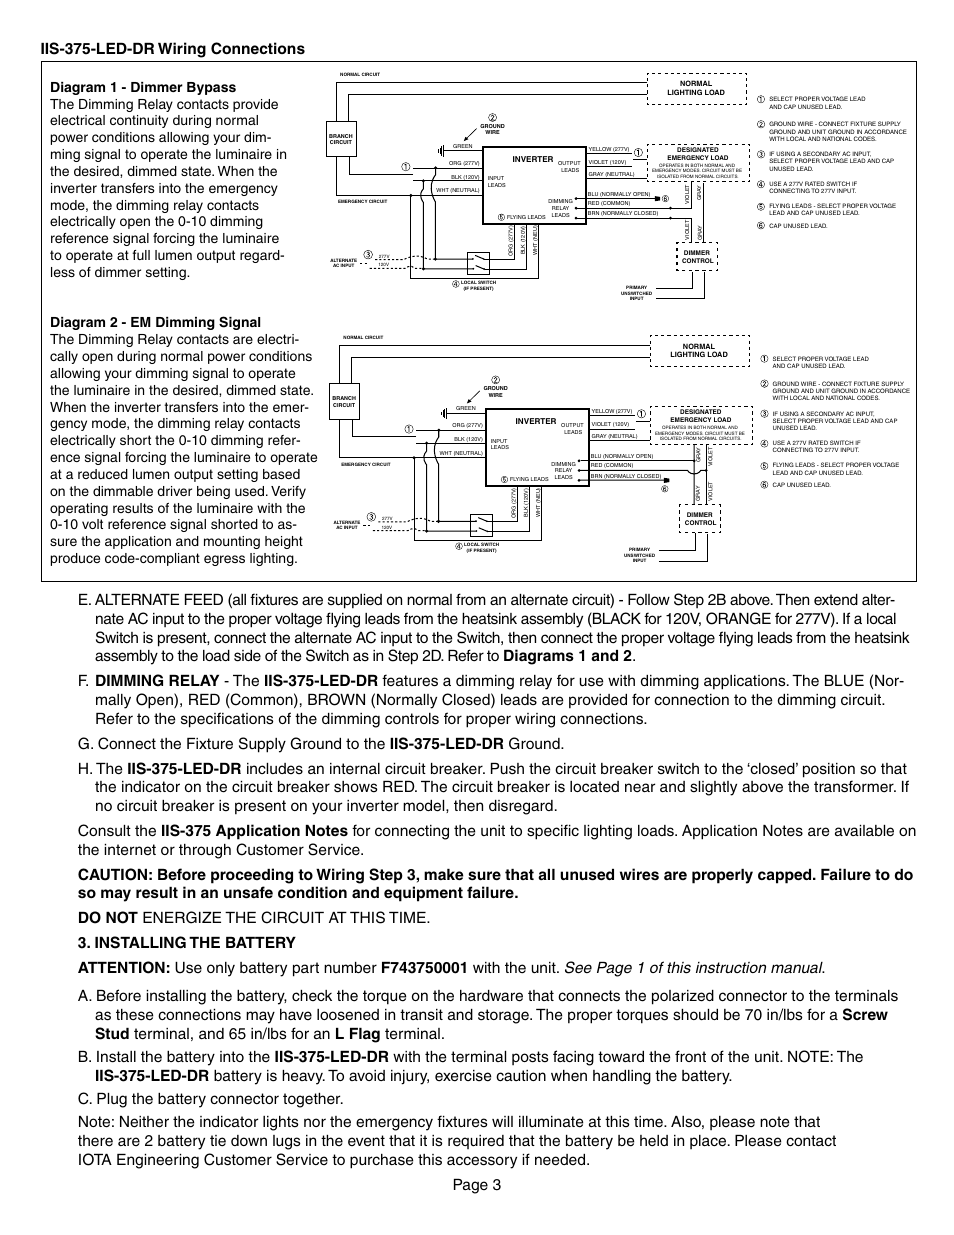 Iis 375 Led Dr Wiring Connections Iota User Manual Three Lead Diagram Page 3 4